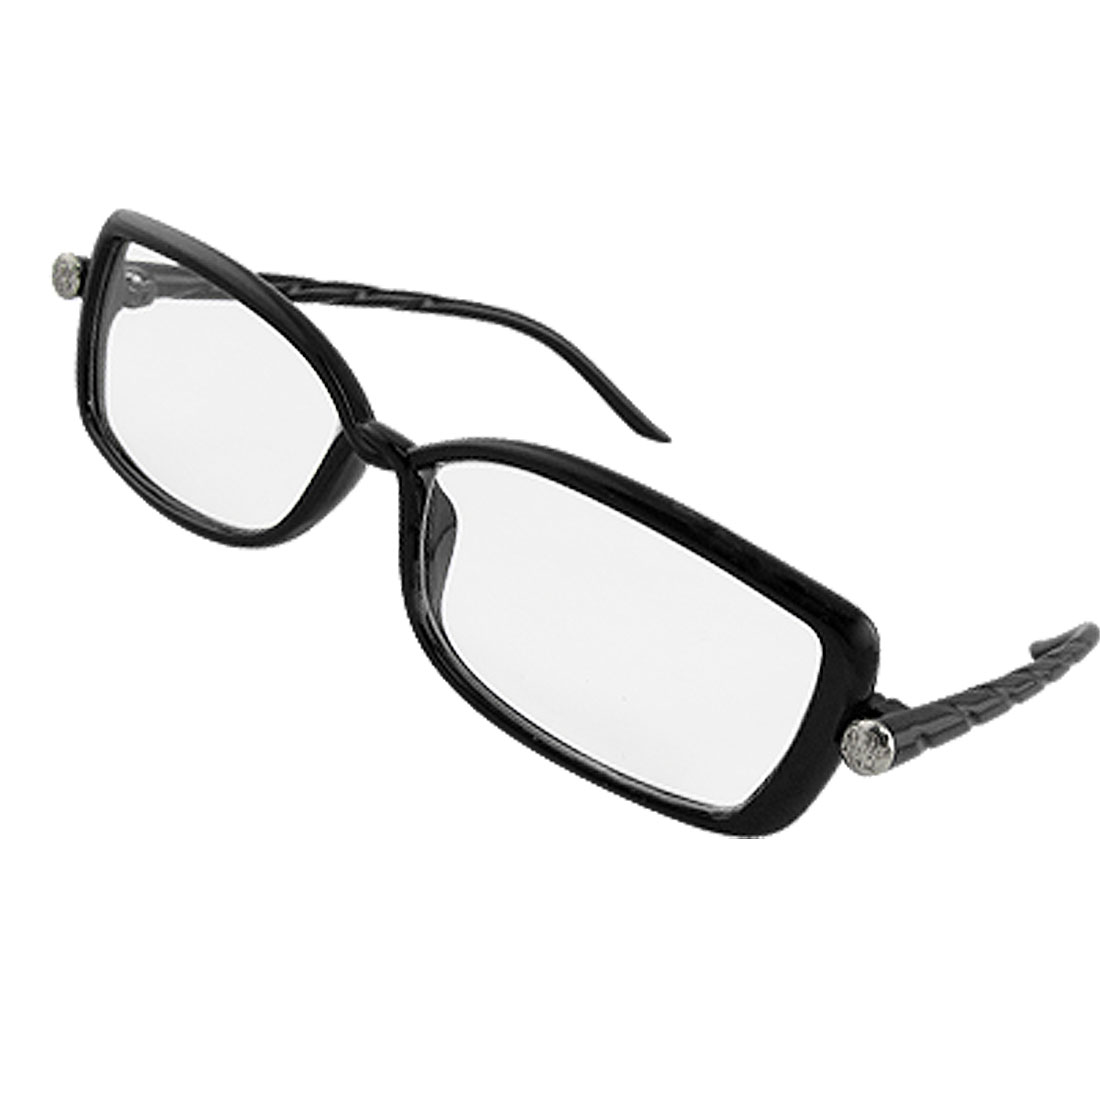 Lady Black Plastic Texture Arms Plain Glasses Eyewear